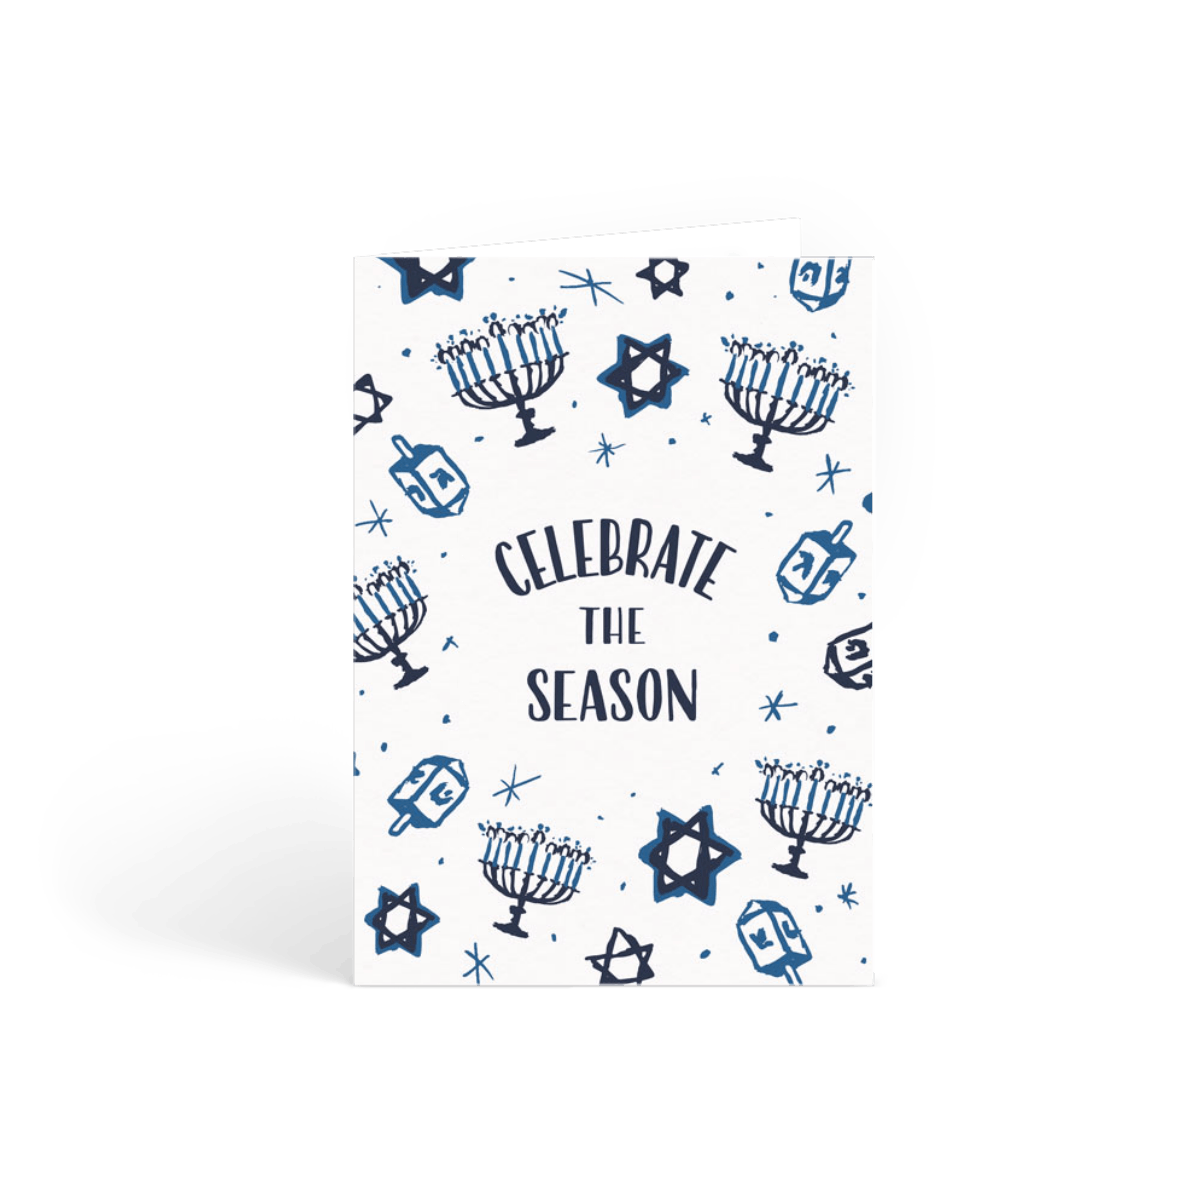 Https%3a%2f%2fwww.papier.com%2fproduct image%2f23792%2f2%2fcelebrate the season hanukkah 5951 front 1497608794.png?ixlib=rb 1.1